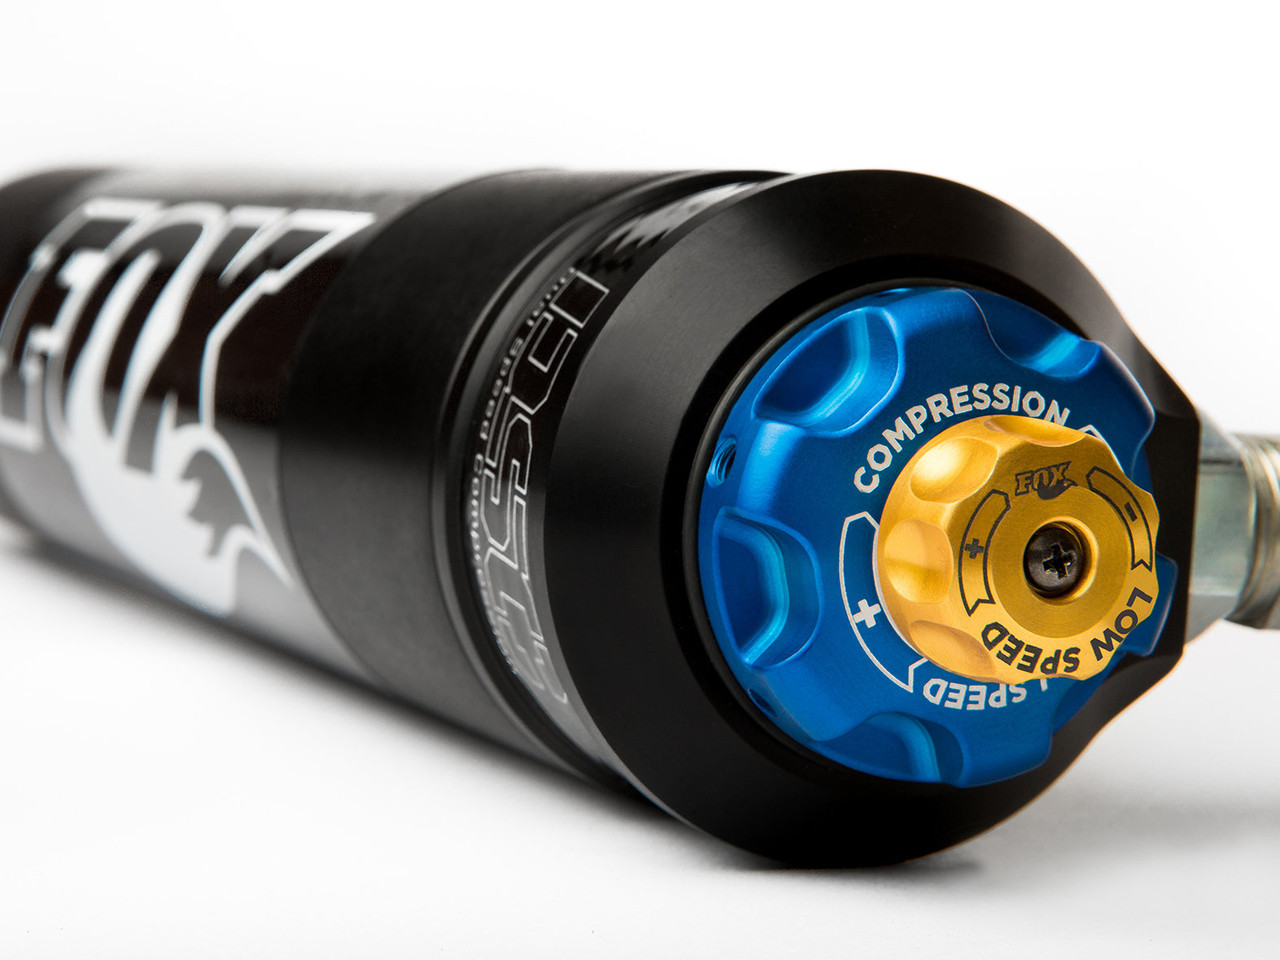 DSC (Dual Speed Compression) Adjustable makes tuning a breeze.